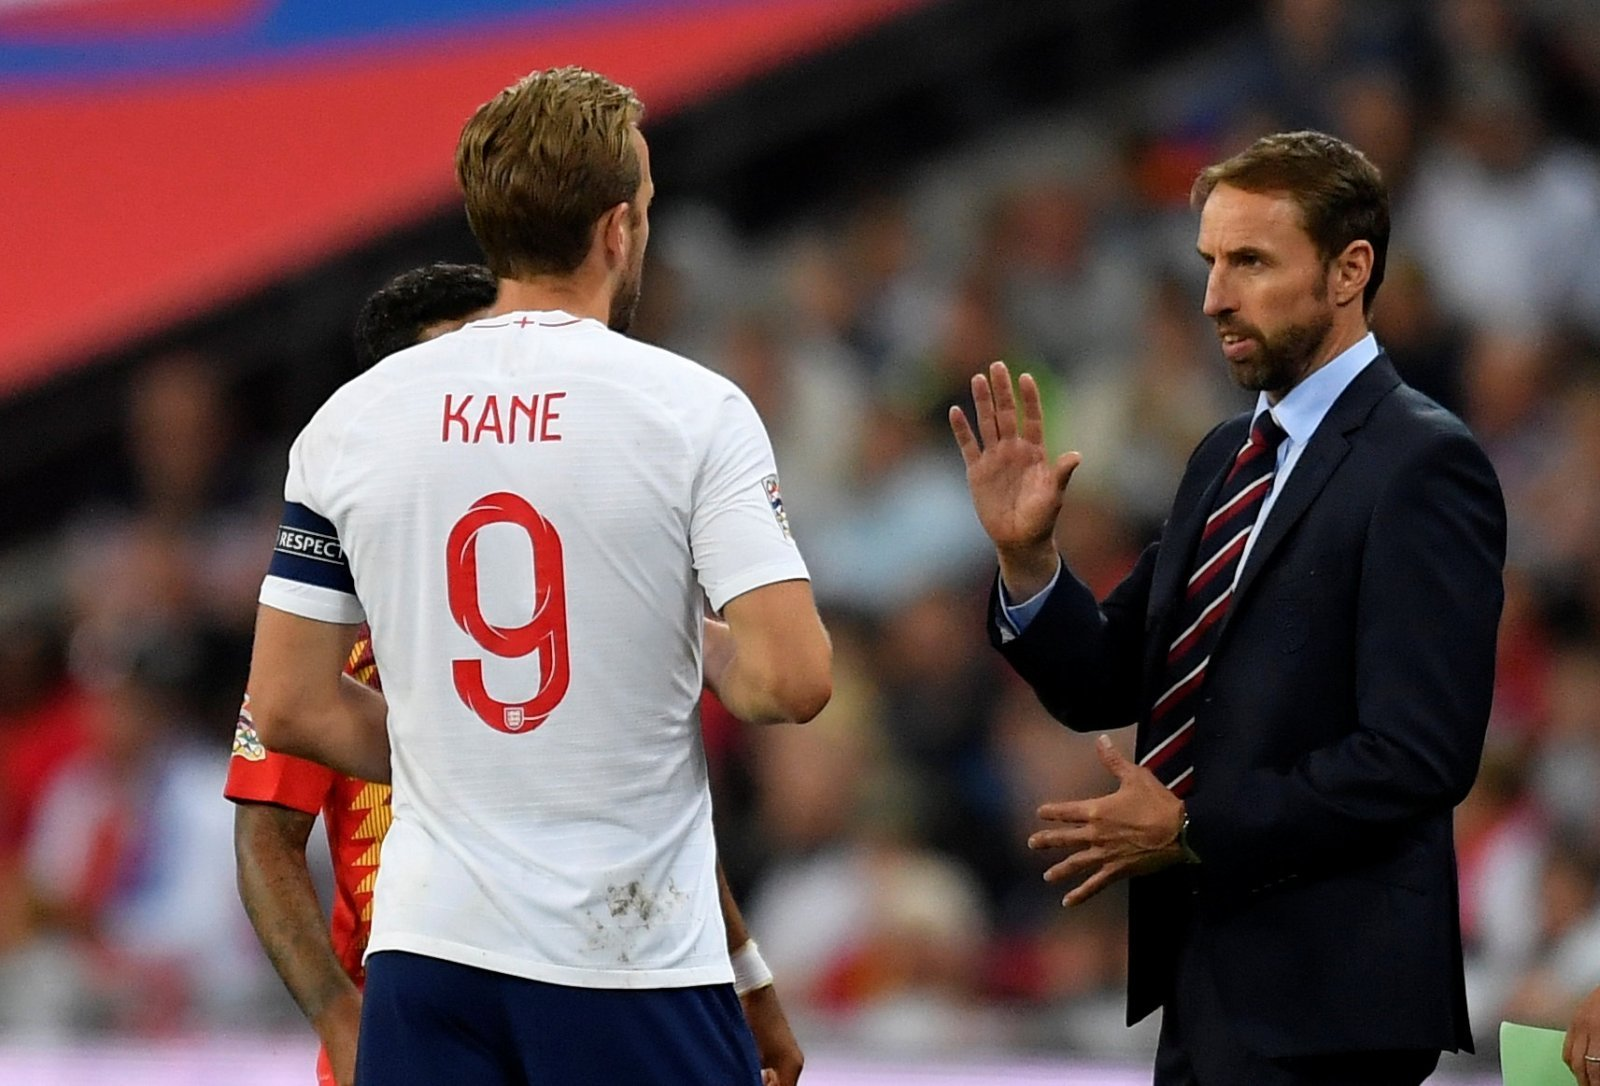 Tottenham fans slate Anfield atmosphere after Harry Kane's comments